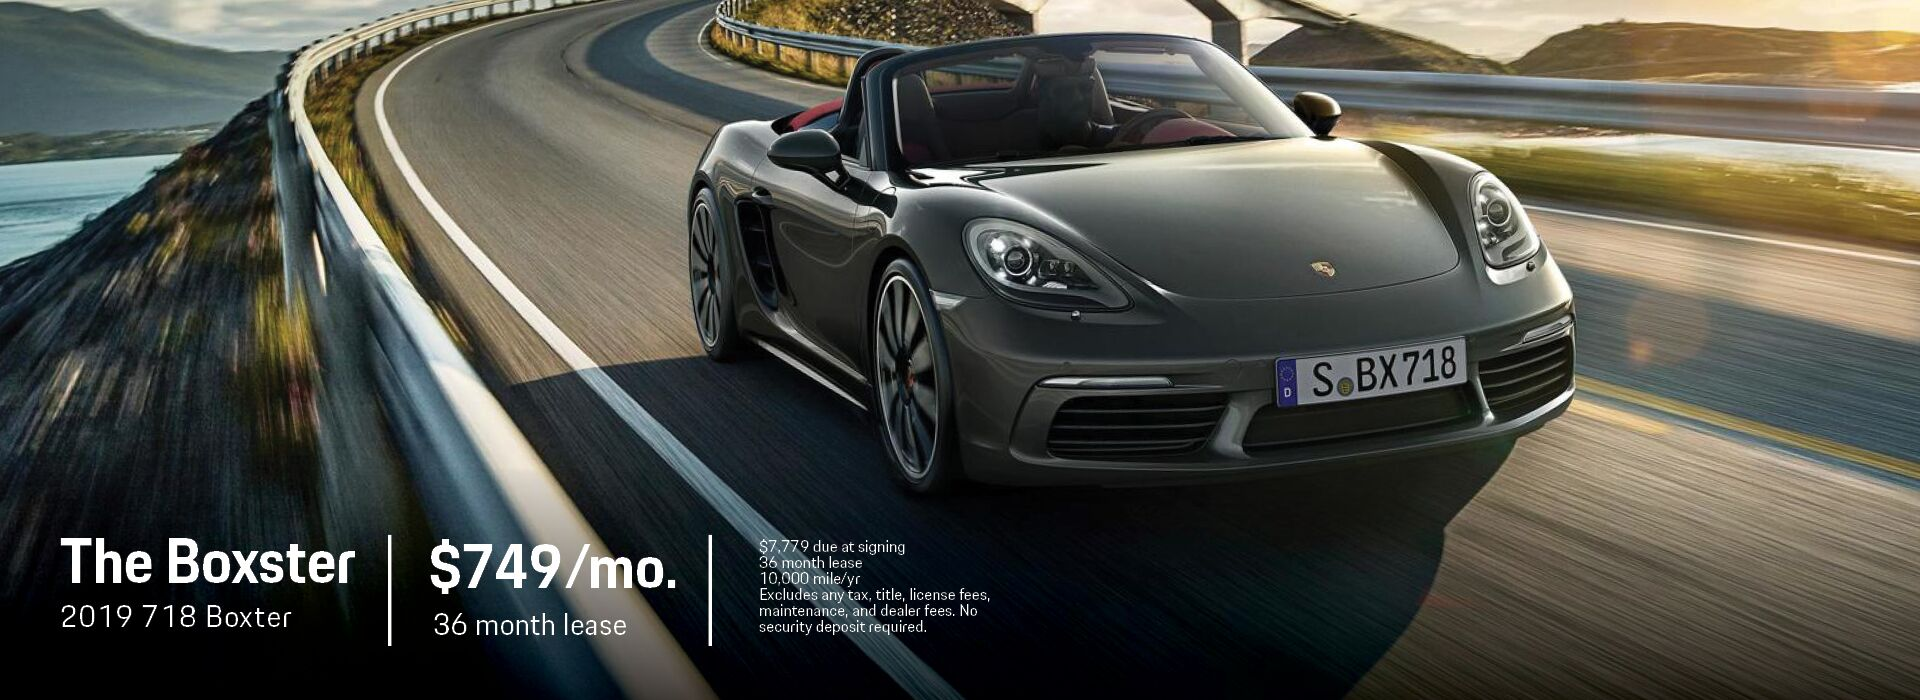 718 Boxster Banner